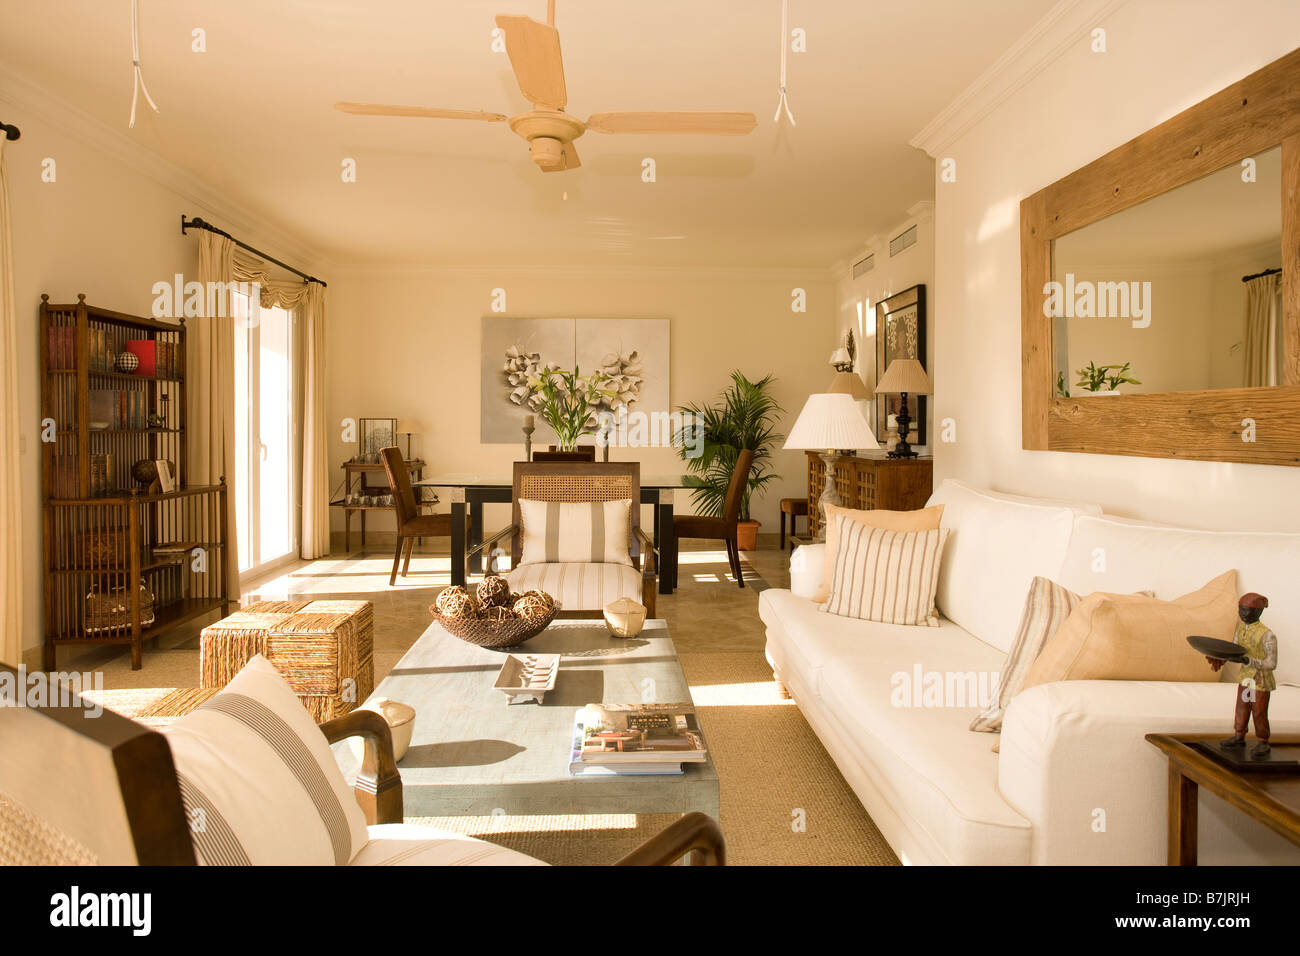 Large Wooden Mirror Above Cream Sofa In Modern Openplan Living And Dining Room With Ceiling Fan